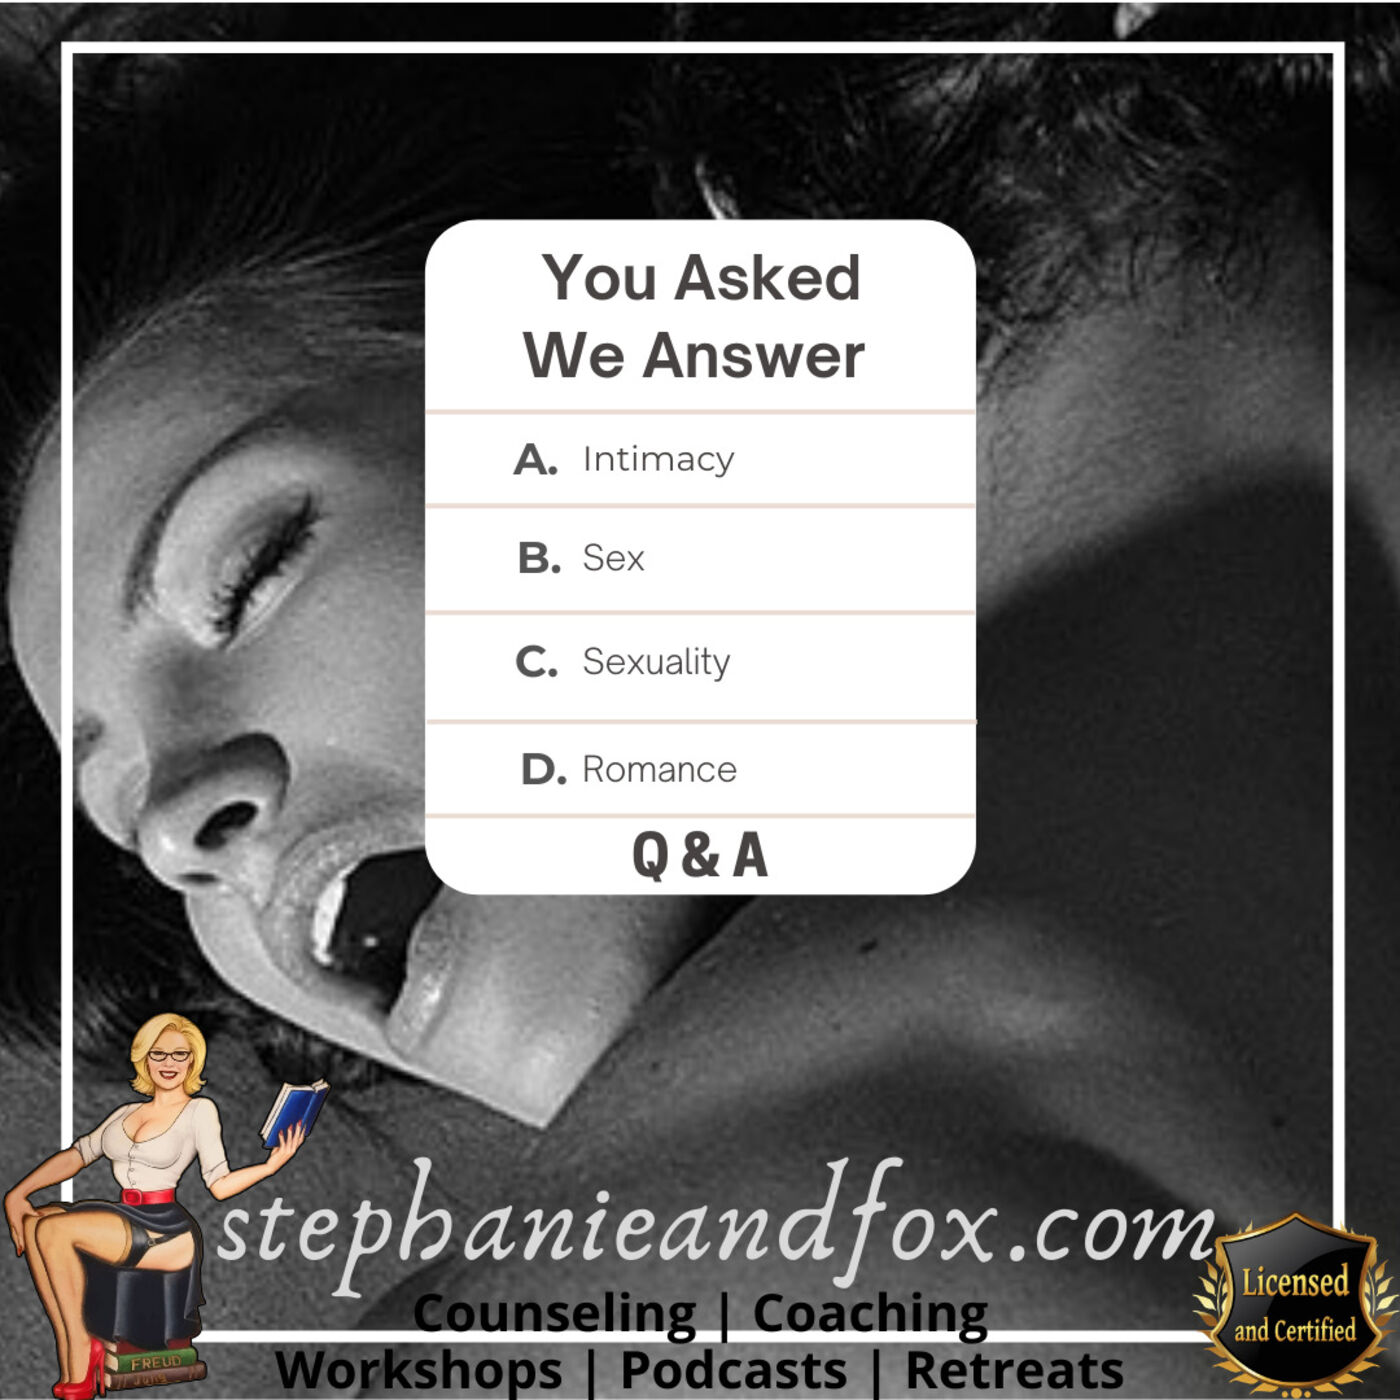 Q & A: questions about sexuality, Intimacy, relationships and more...